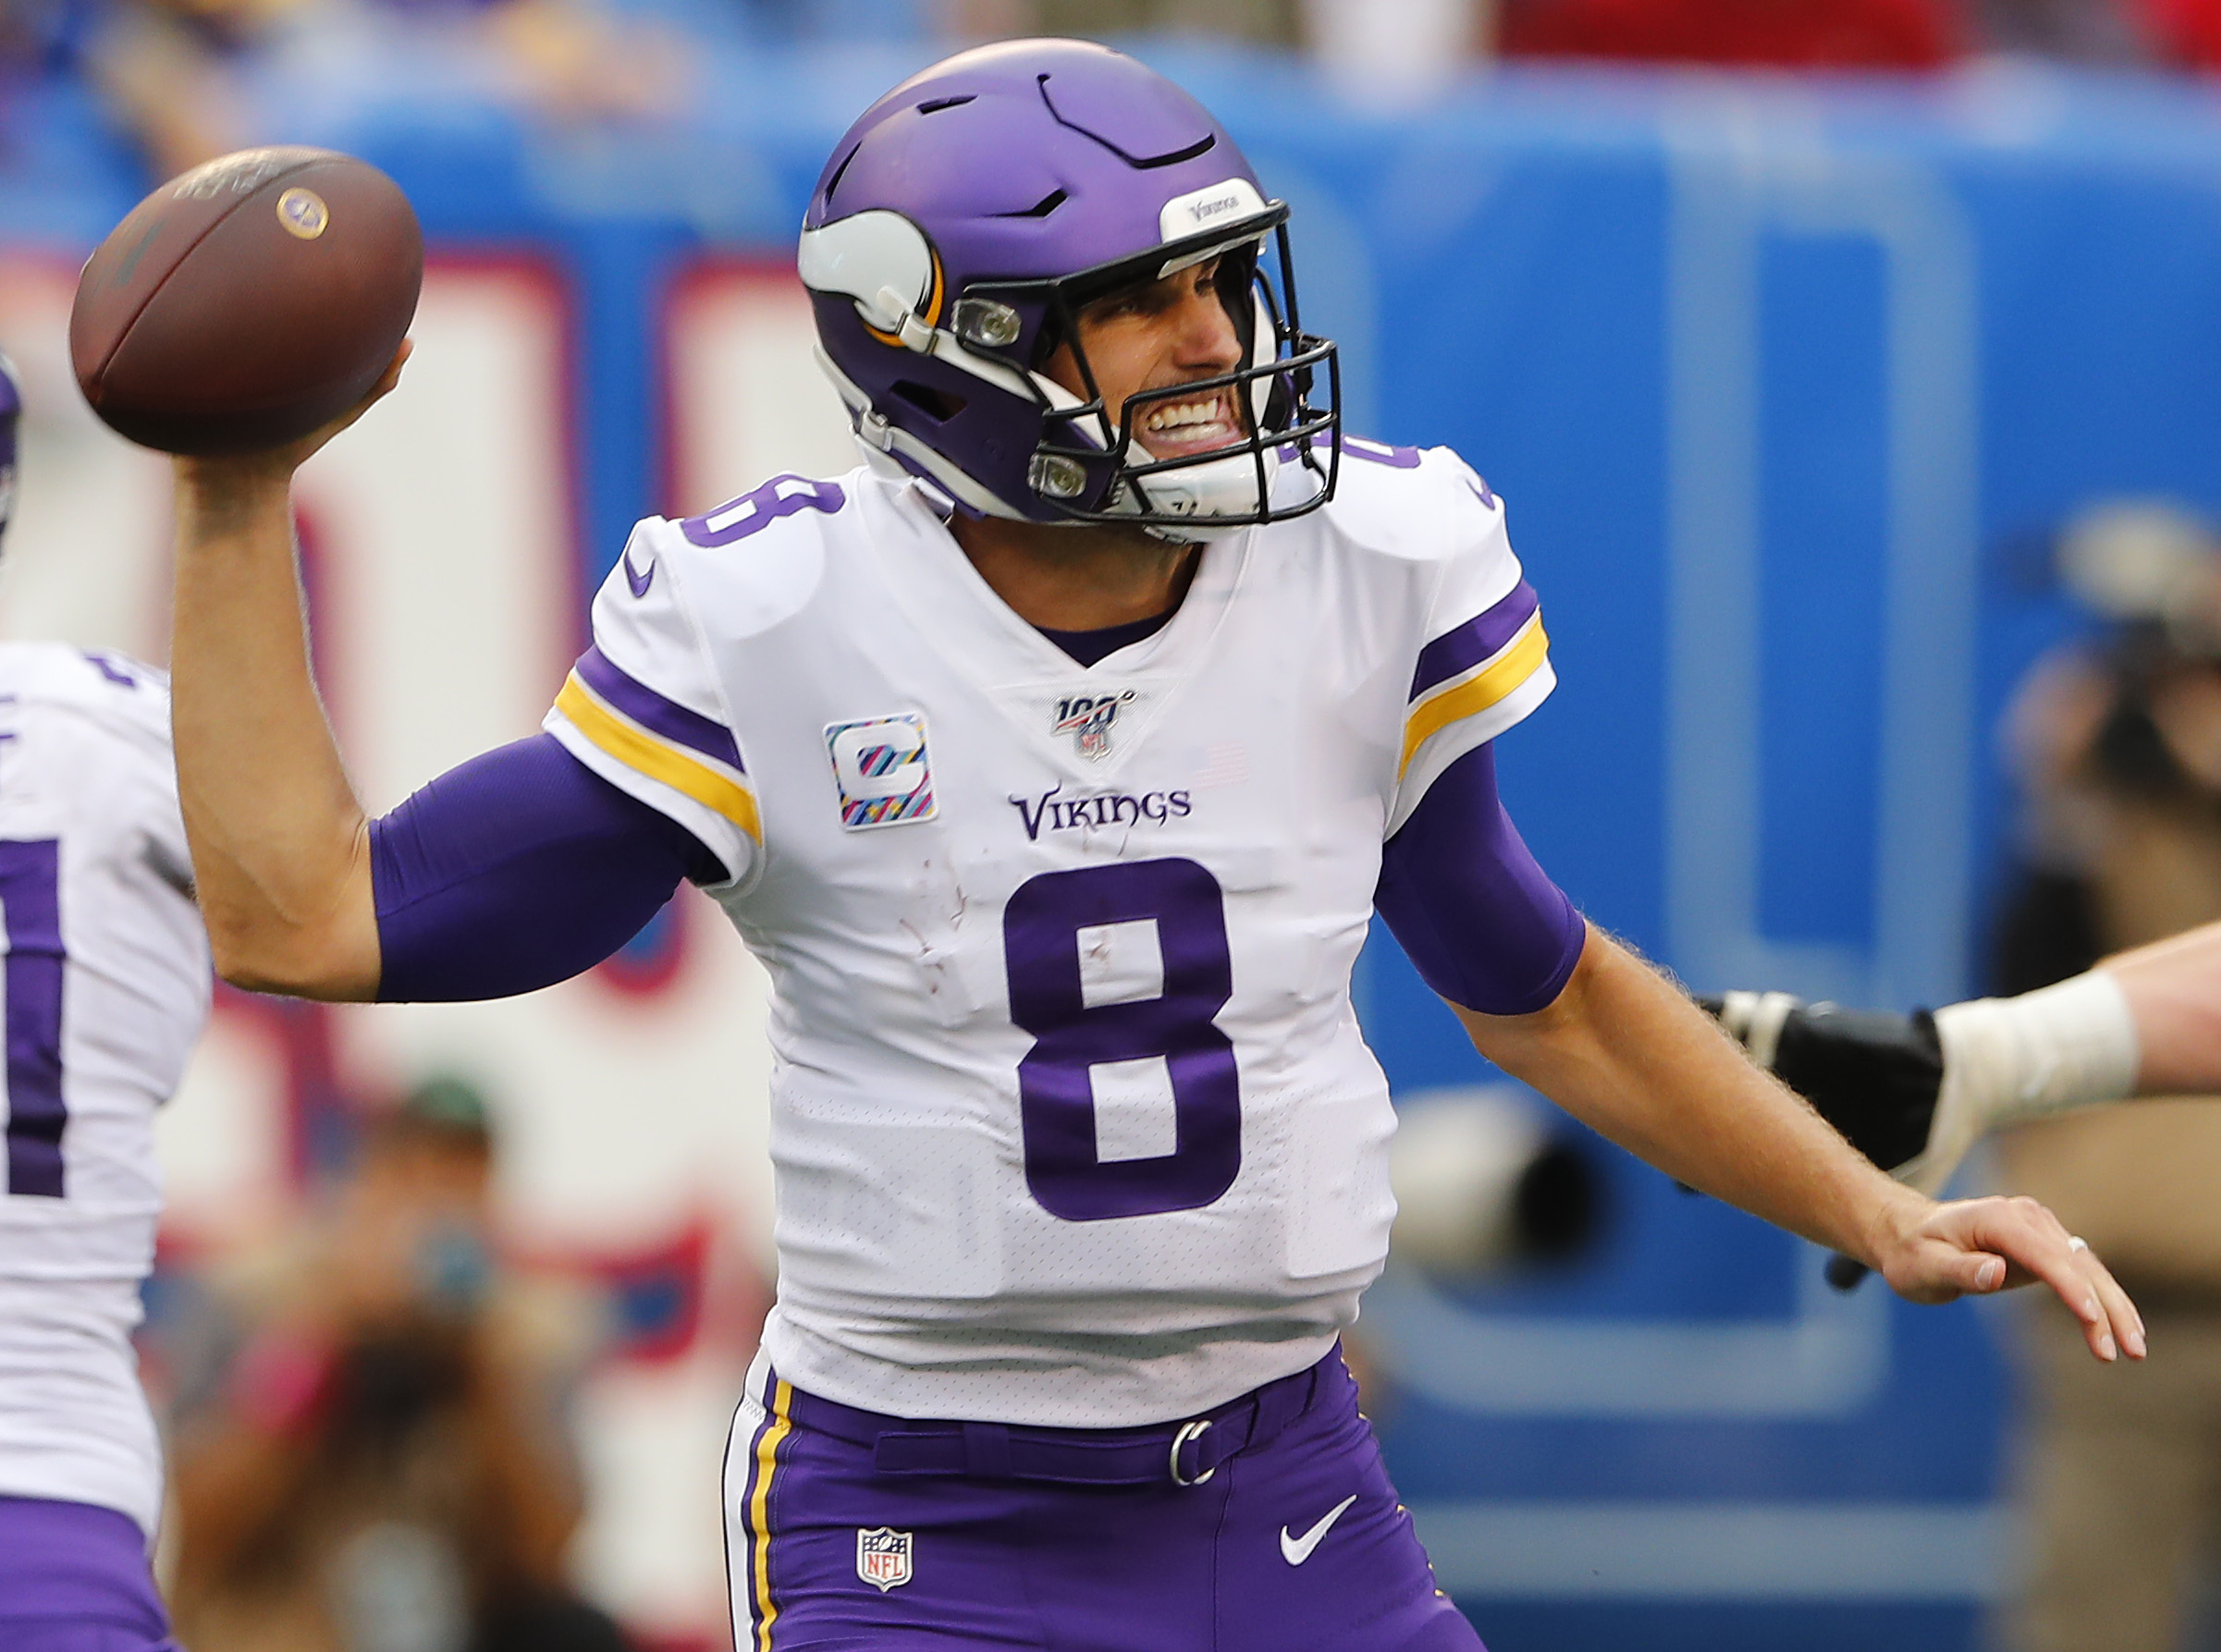 Former teammate believes Kirk Cousins is 'weakest part' of Vikings' offense